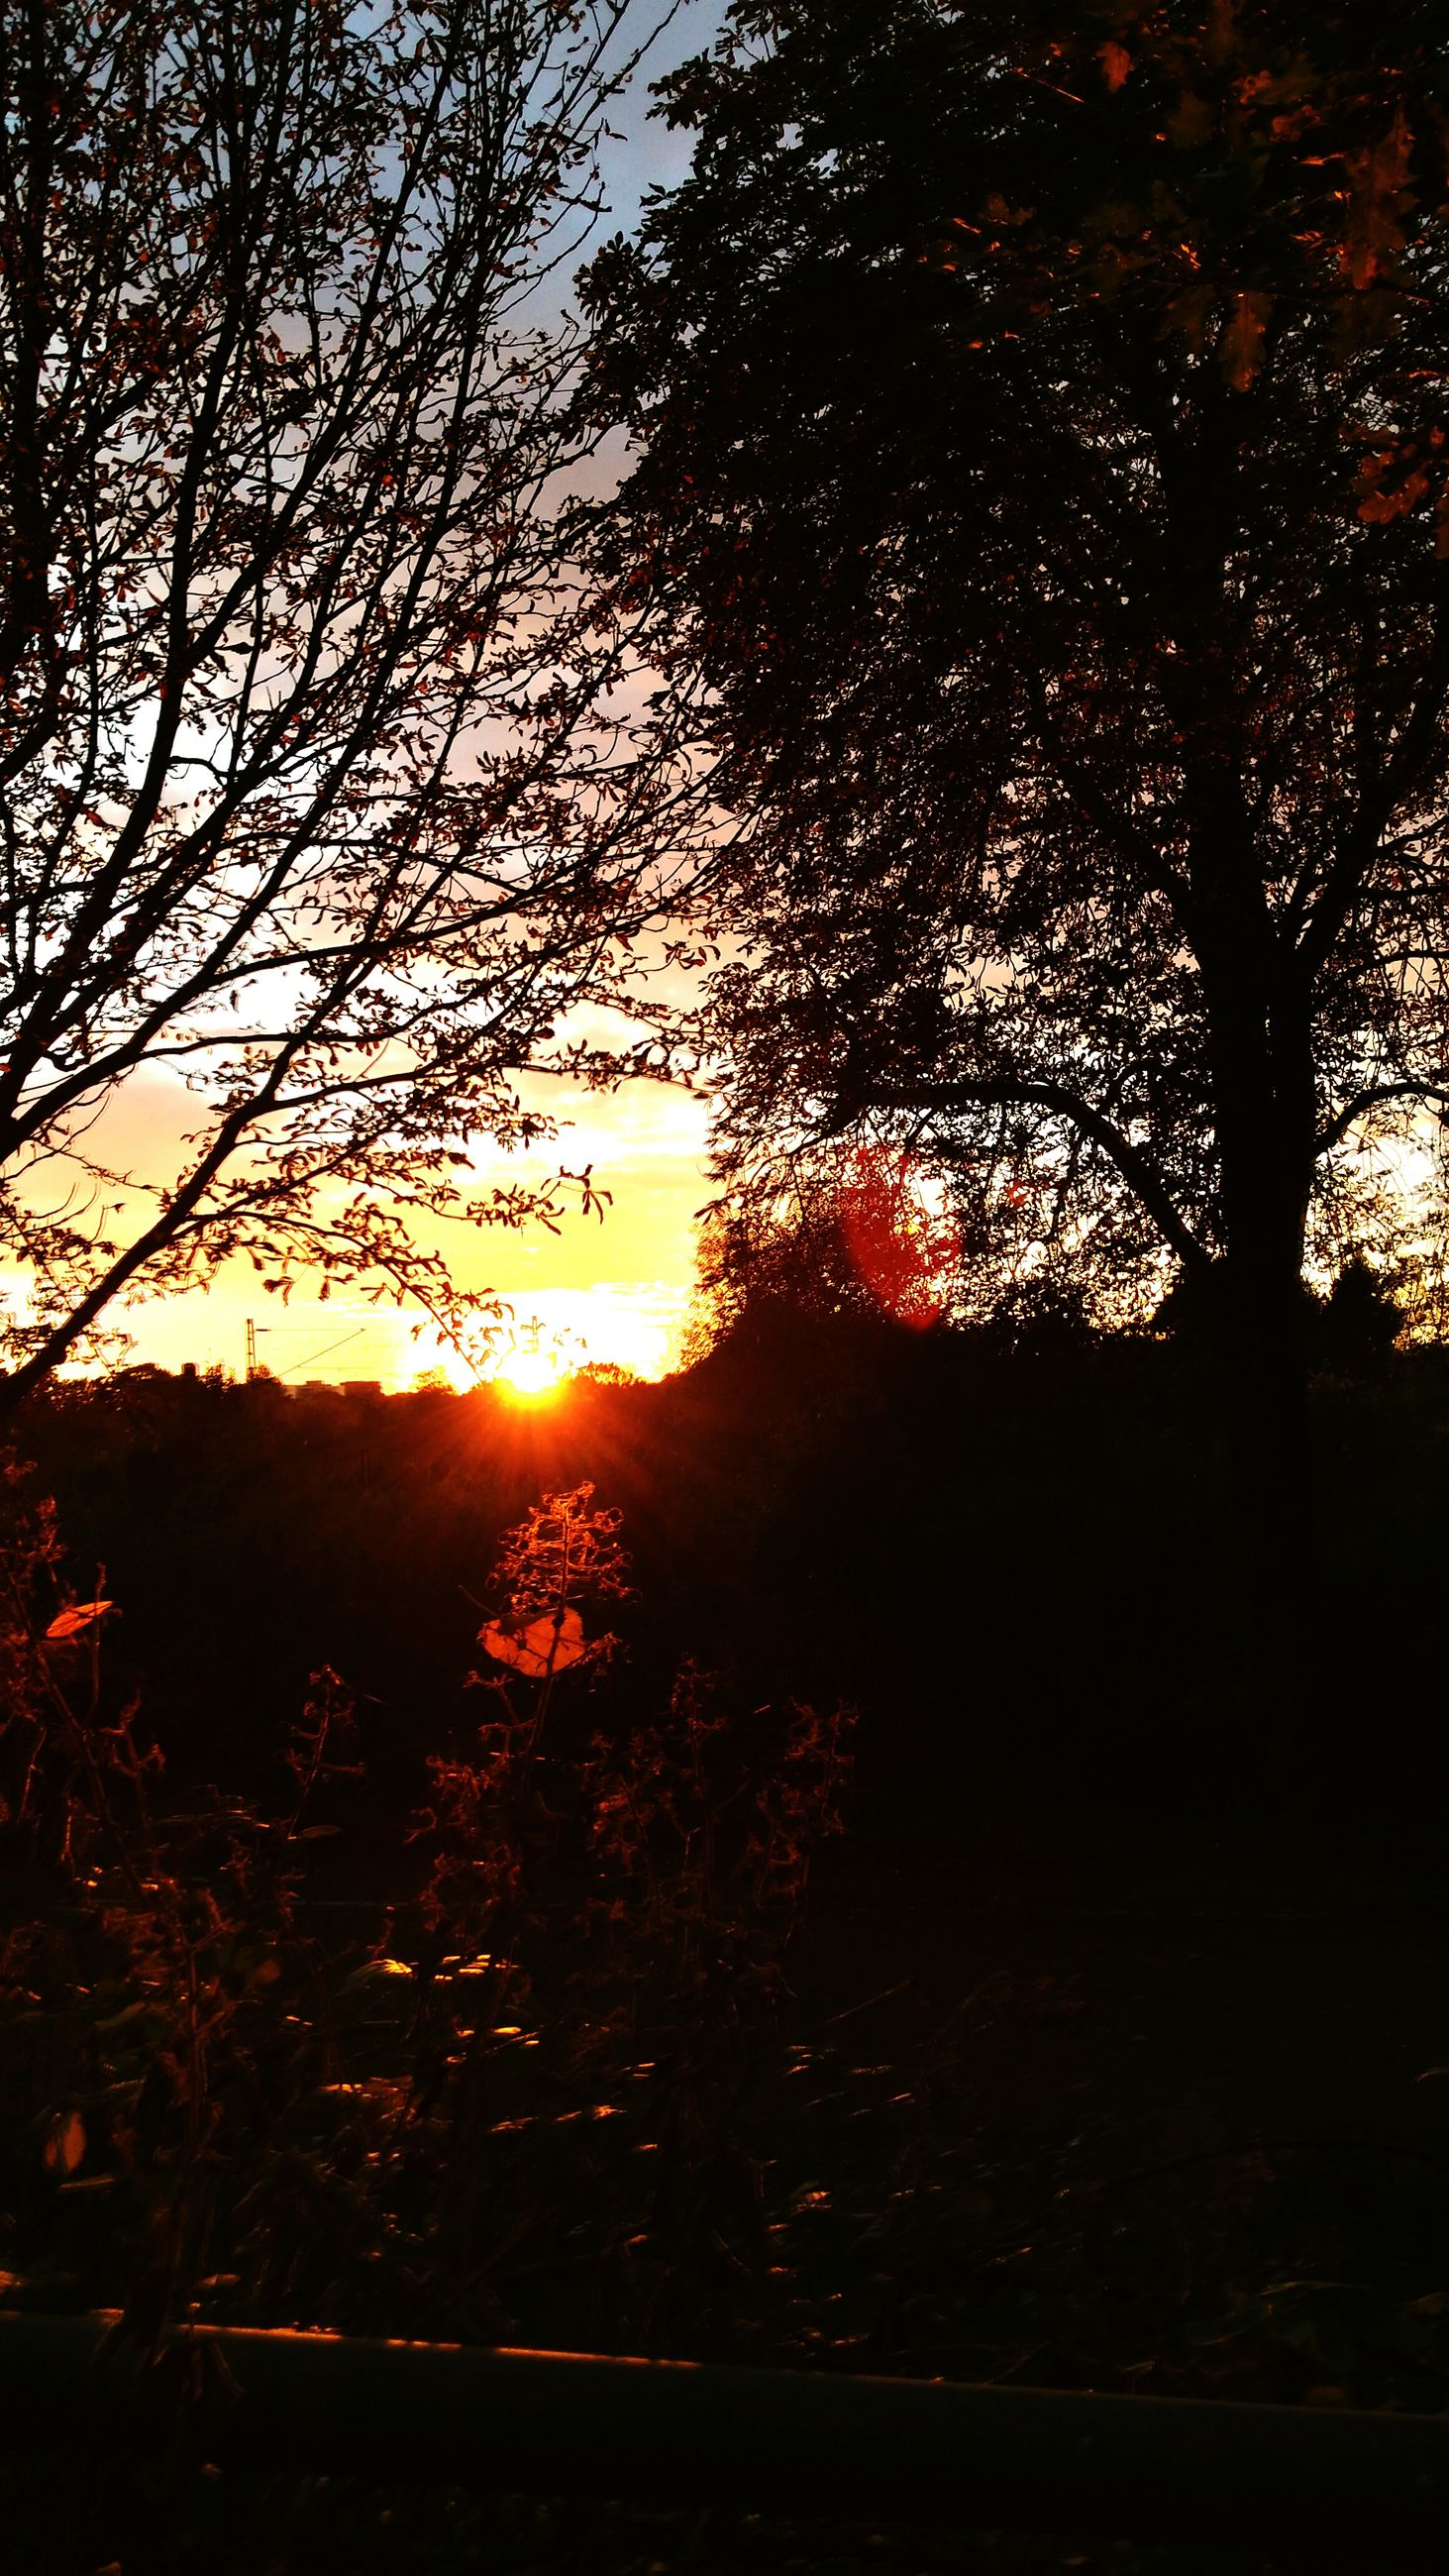 sunset, tree, nature, orange color, no people, sky, silhouette, outdoors, beauty in nature, scenics, close-up, day